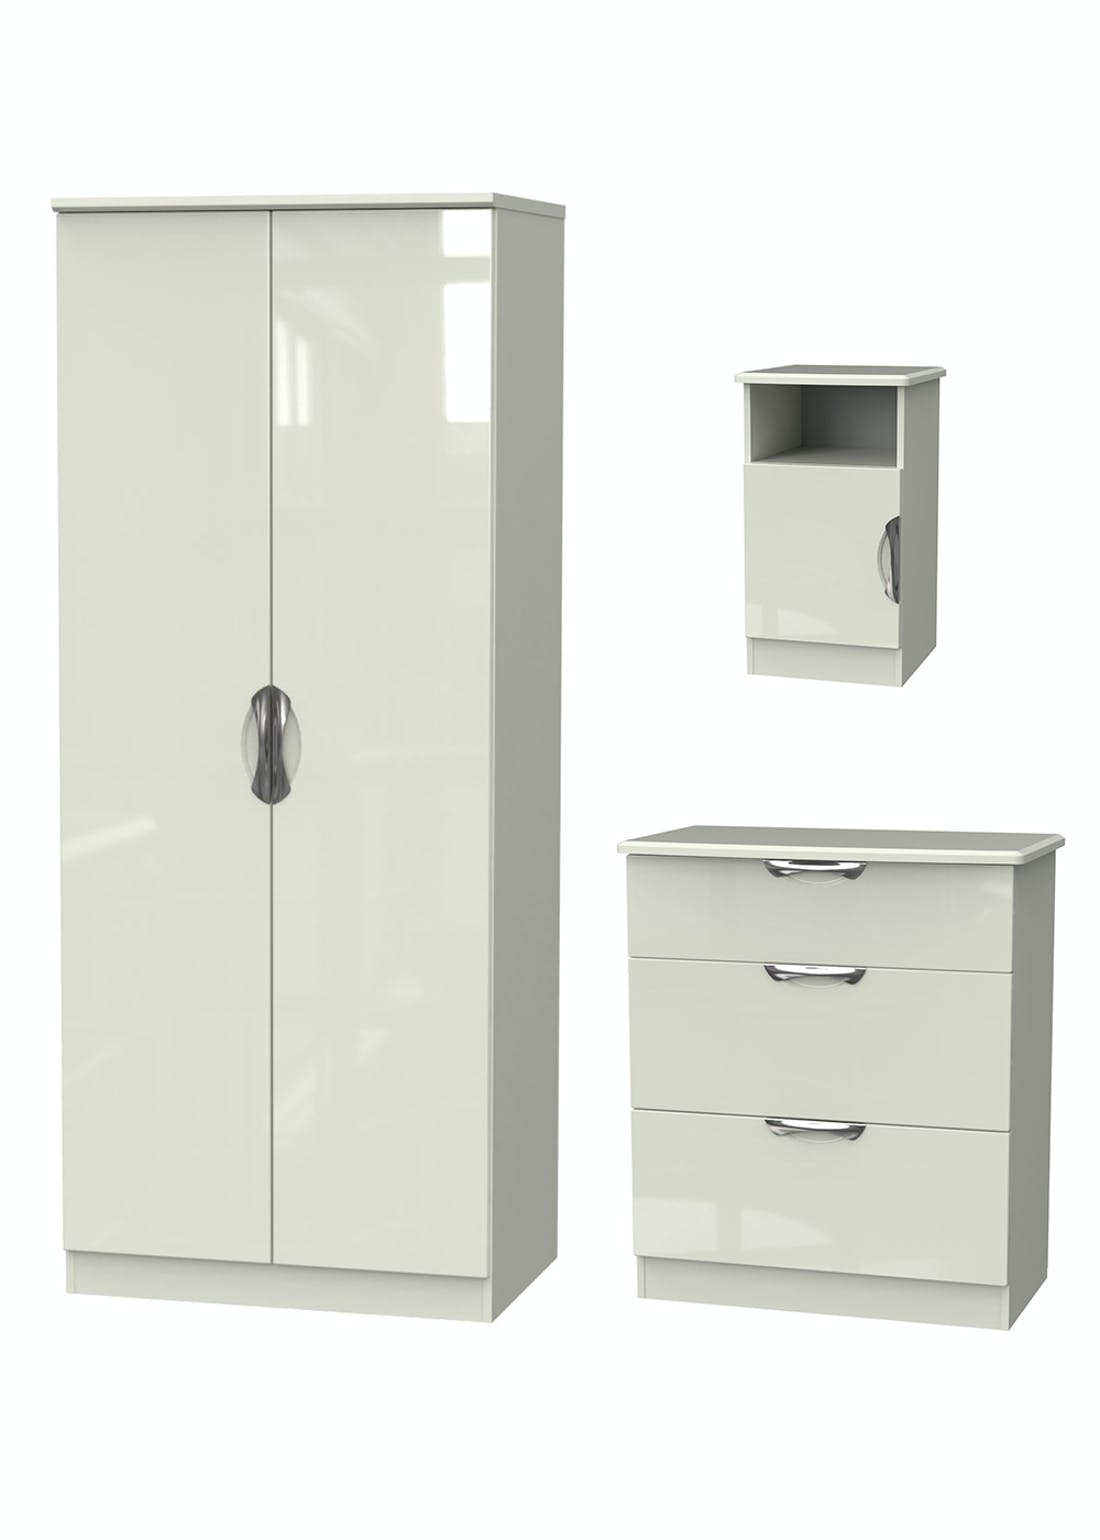 Swift Bordeaux 3 Piece Bedroom Furniture Collection